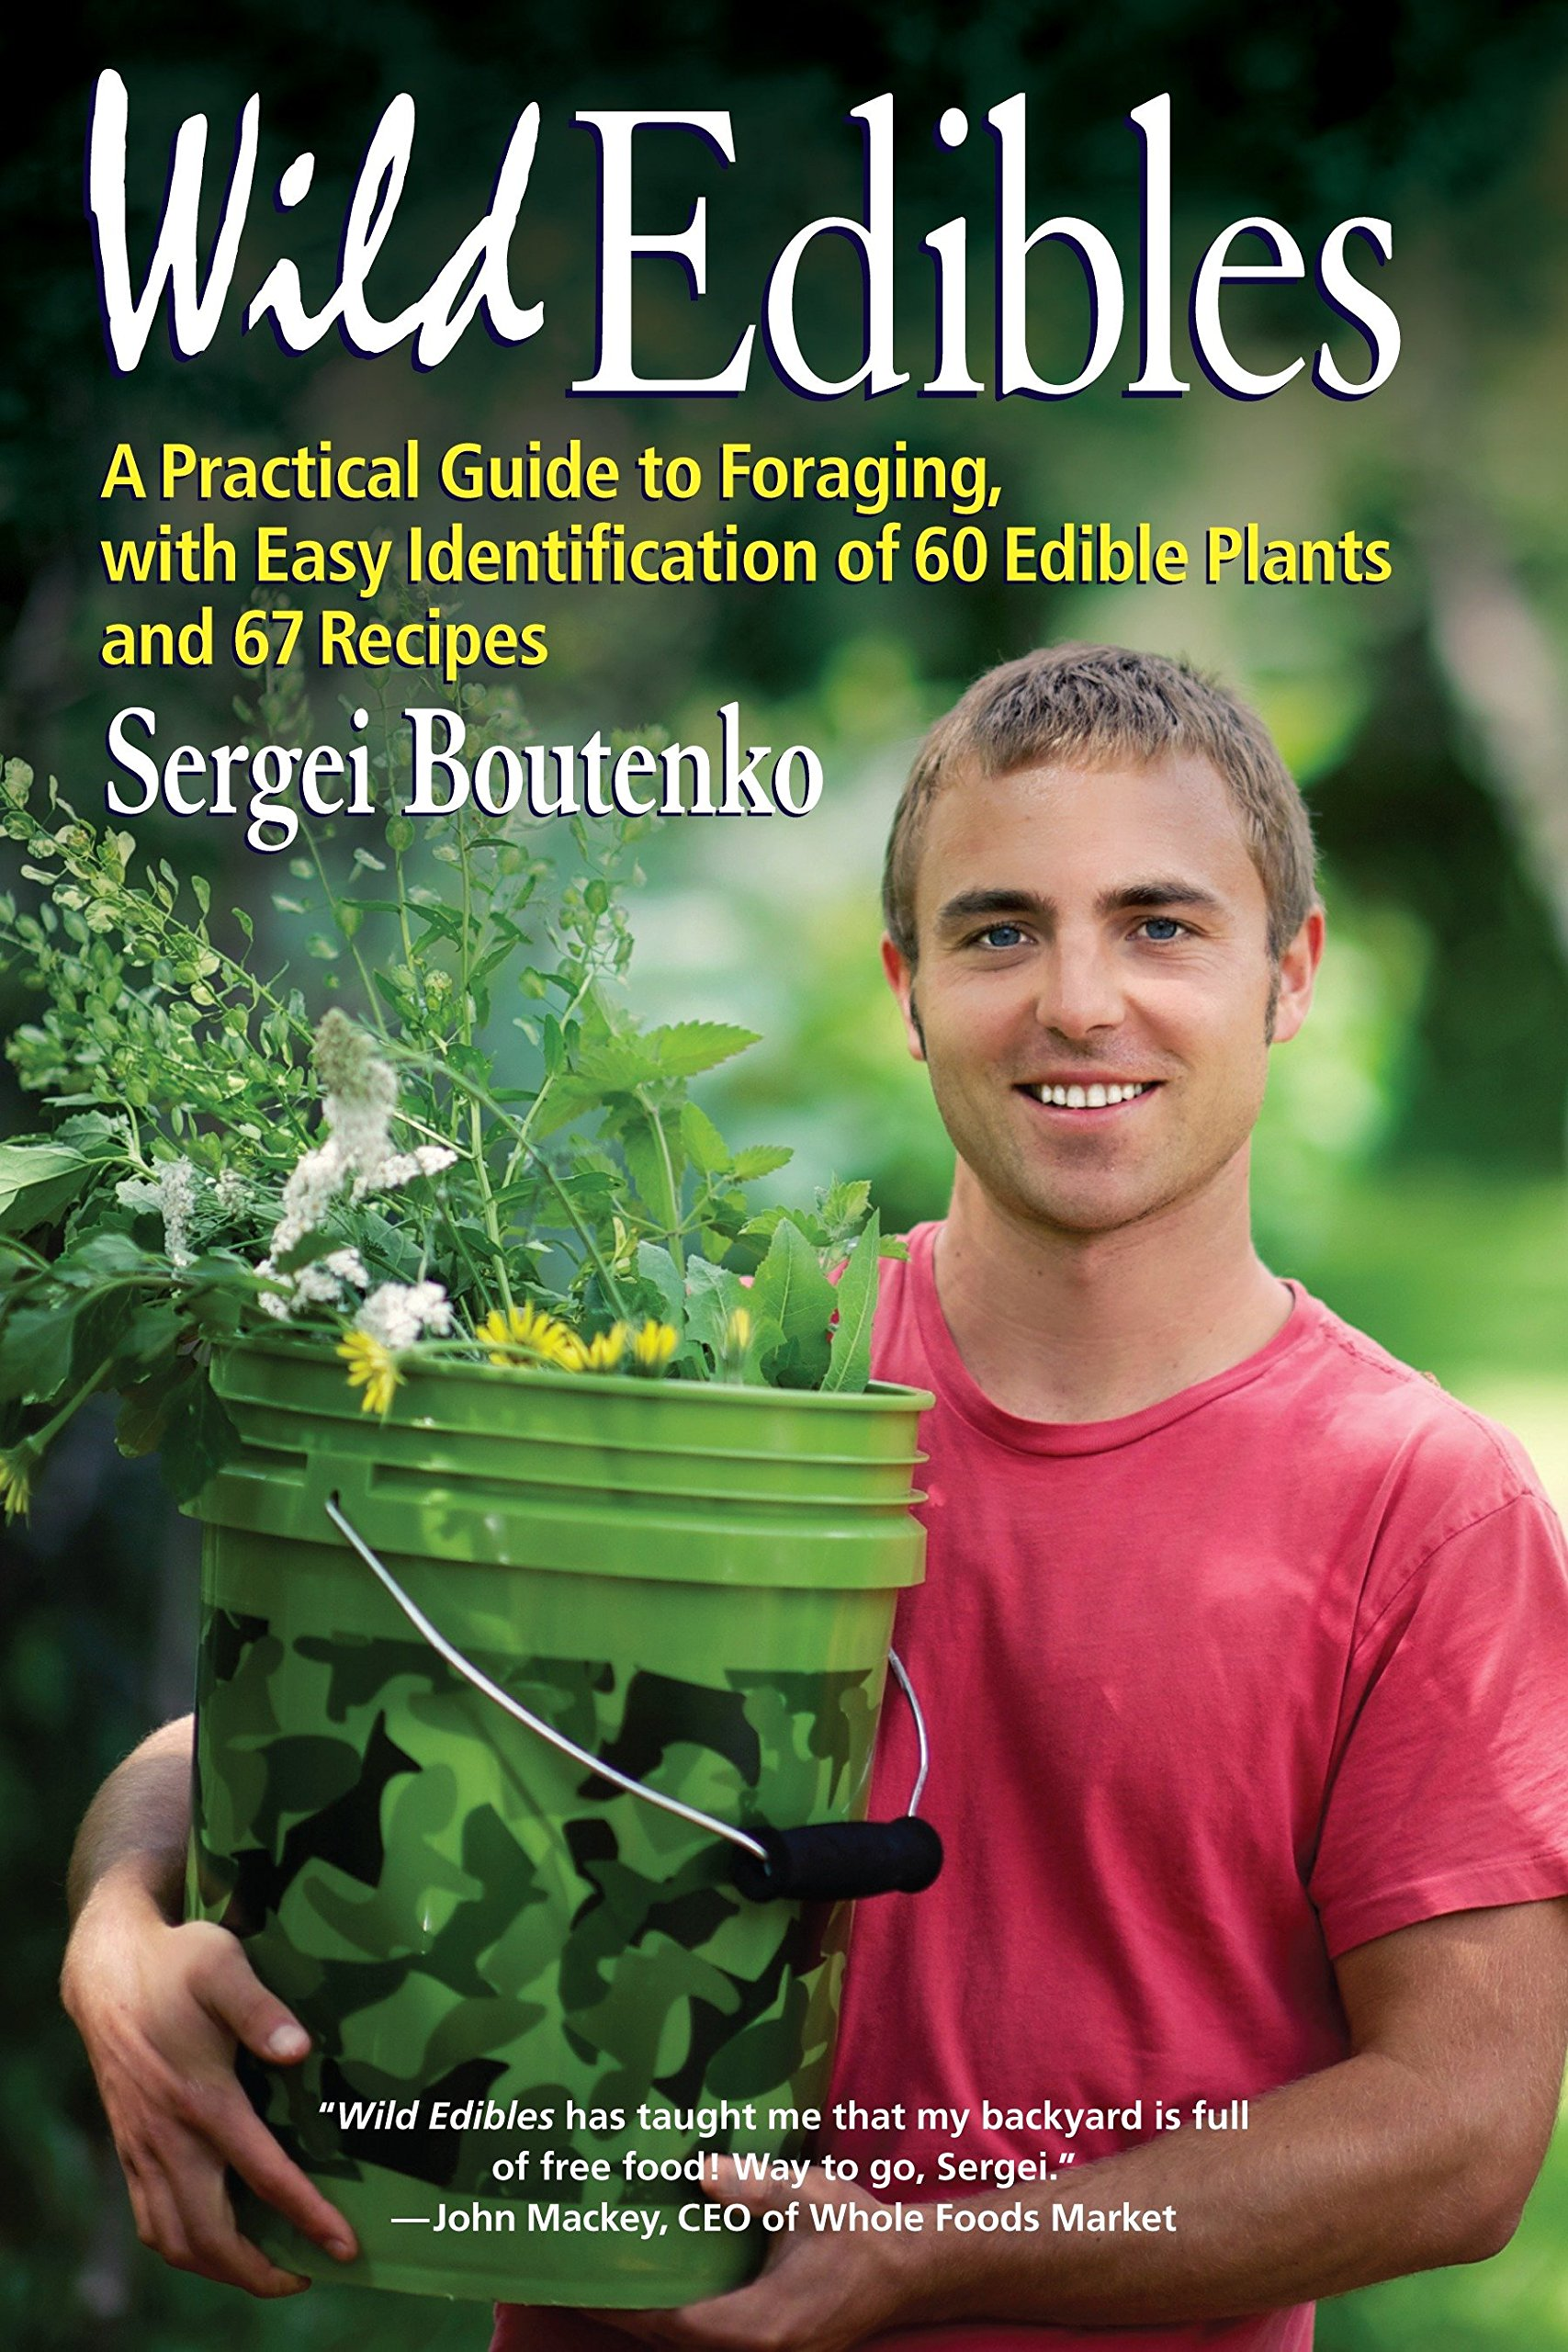 Wild Edibles: A Practical Guide to Foraging, with Easy Identification of 60 Edible  Plants and 67 Recipes: Sergei Boutenko: 9781583946022: Amazon.com: Books